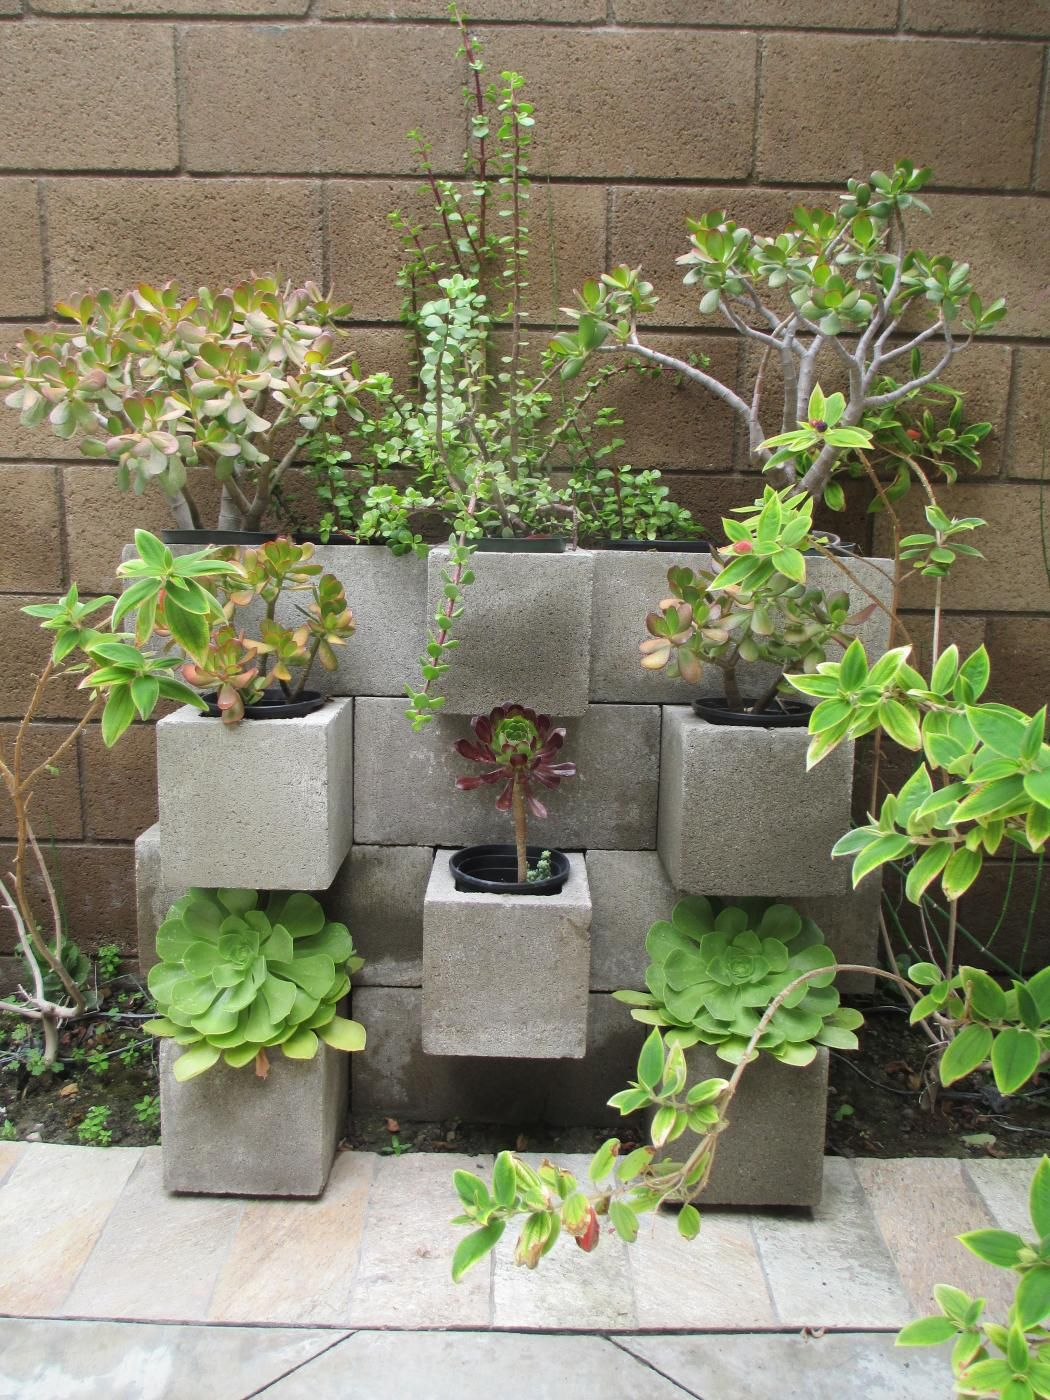 DIY Cinder Block Garden | Cinder block garden, Wall fountains and ...